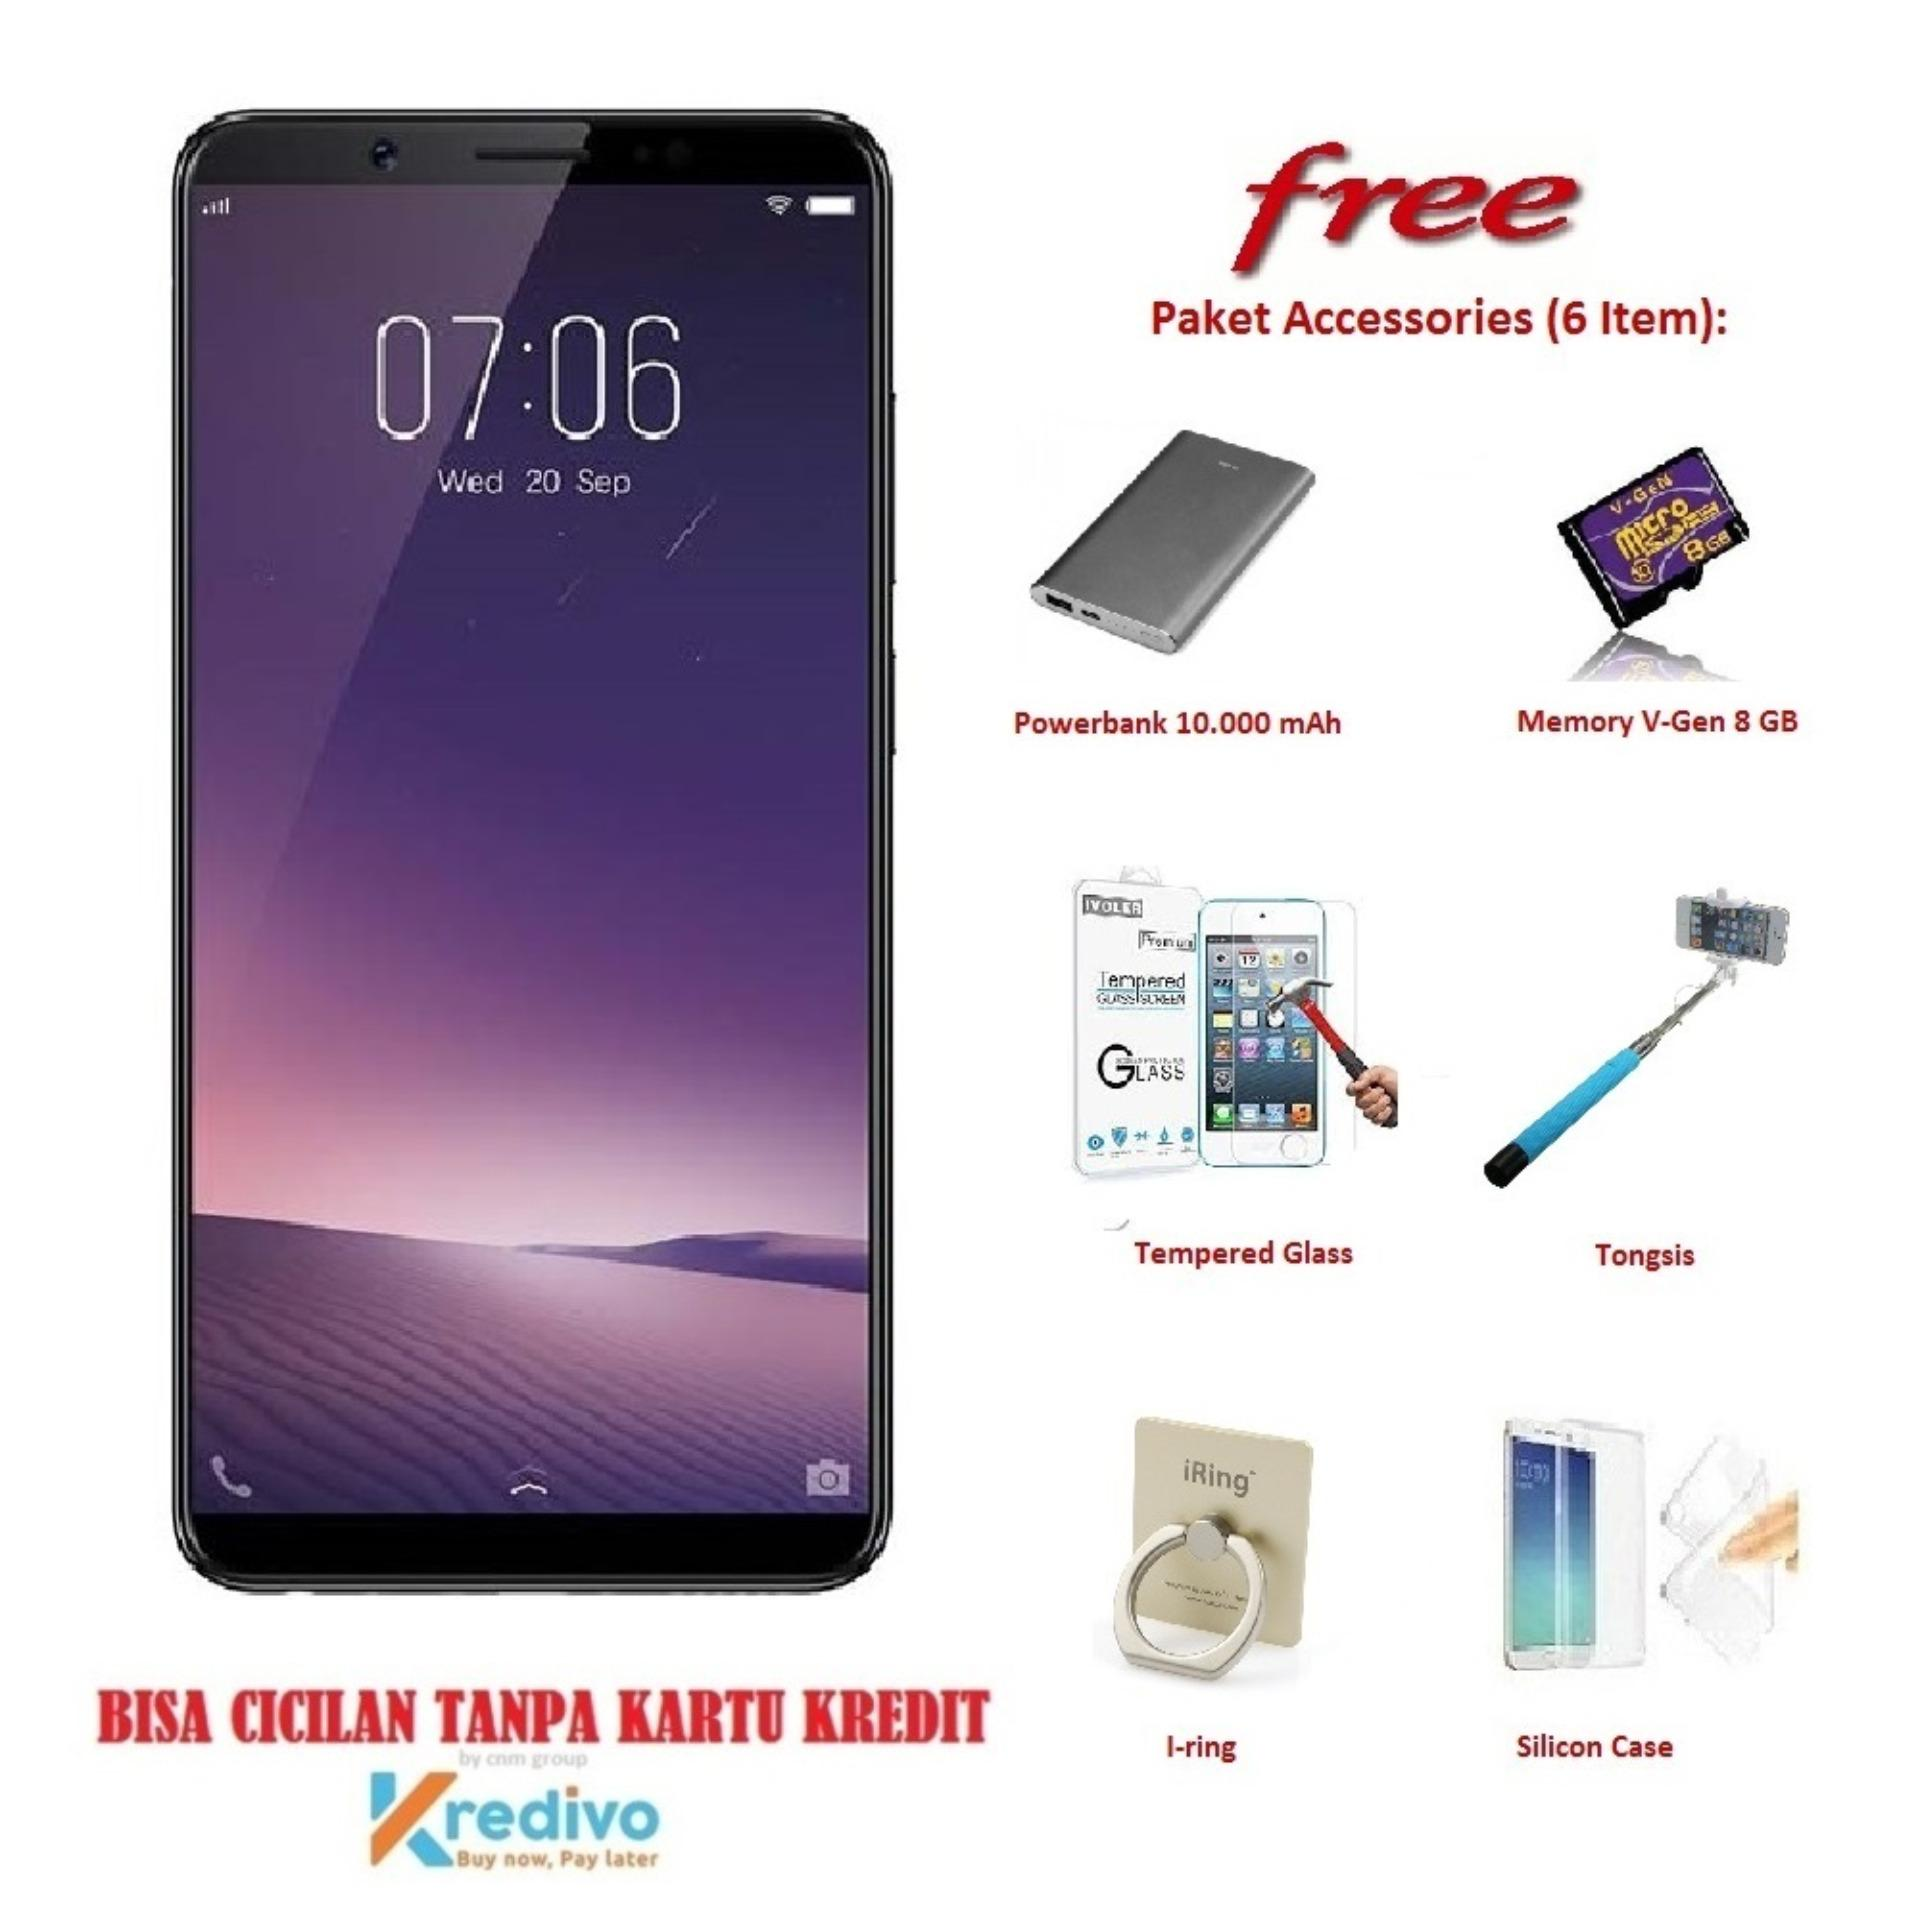 Promo Vivo V7 4 32Gb Free 6 Item Accessories Akhir Tahun